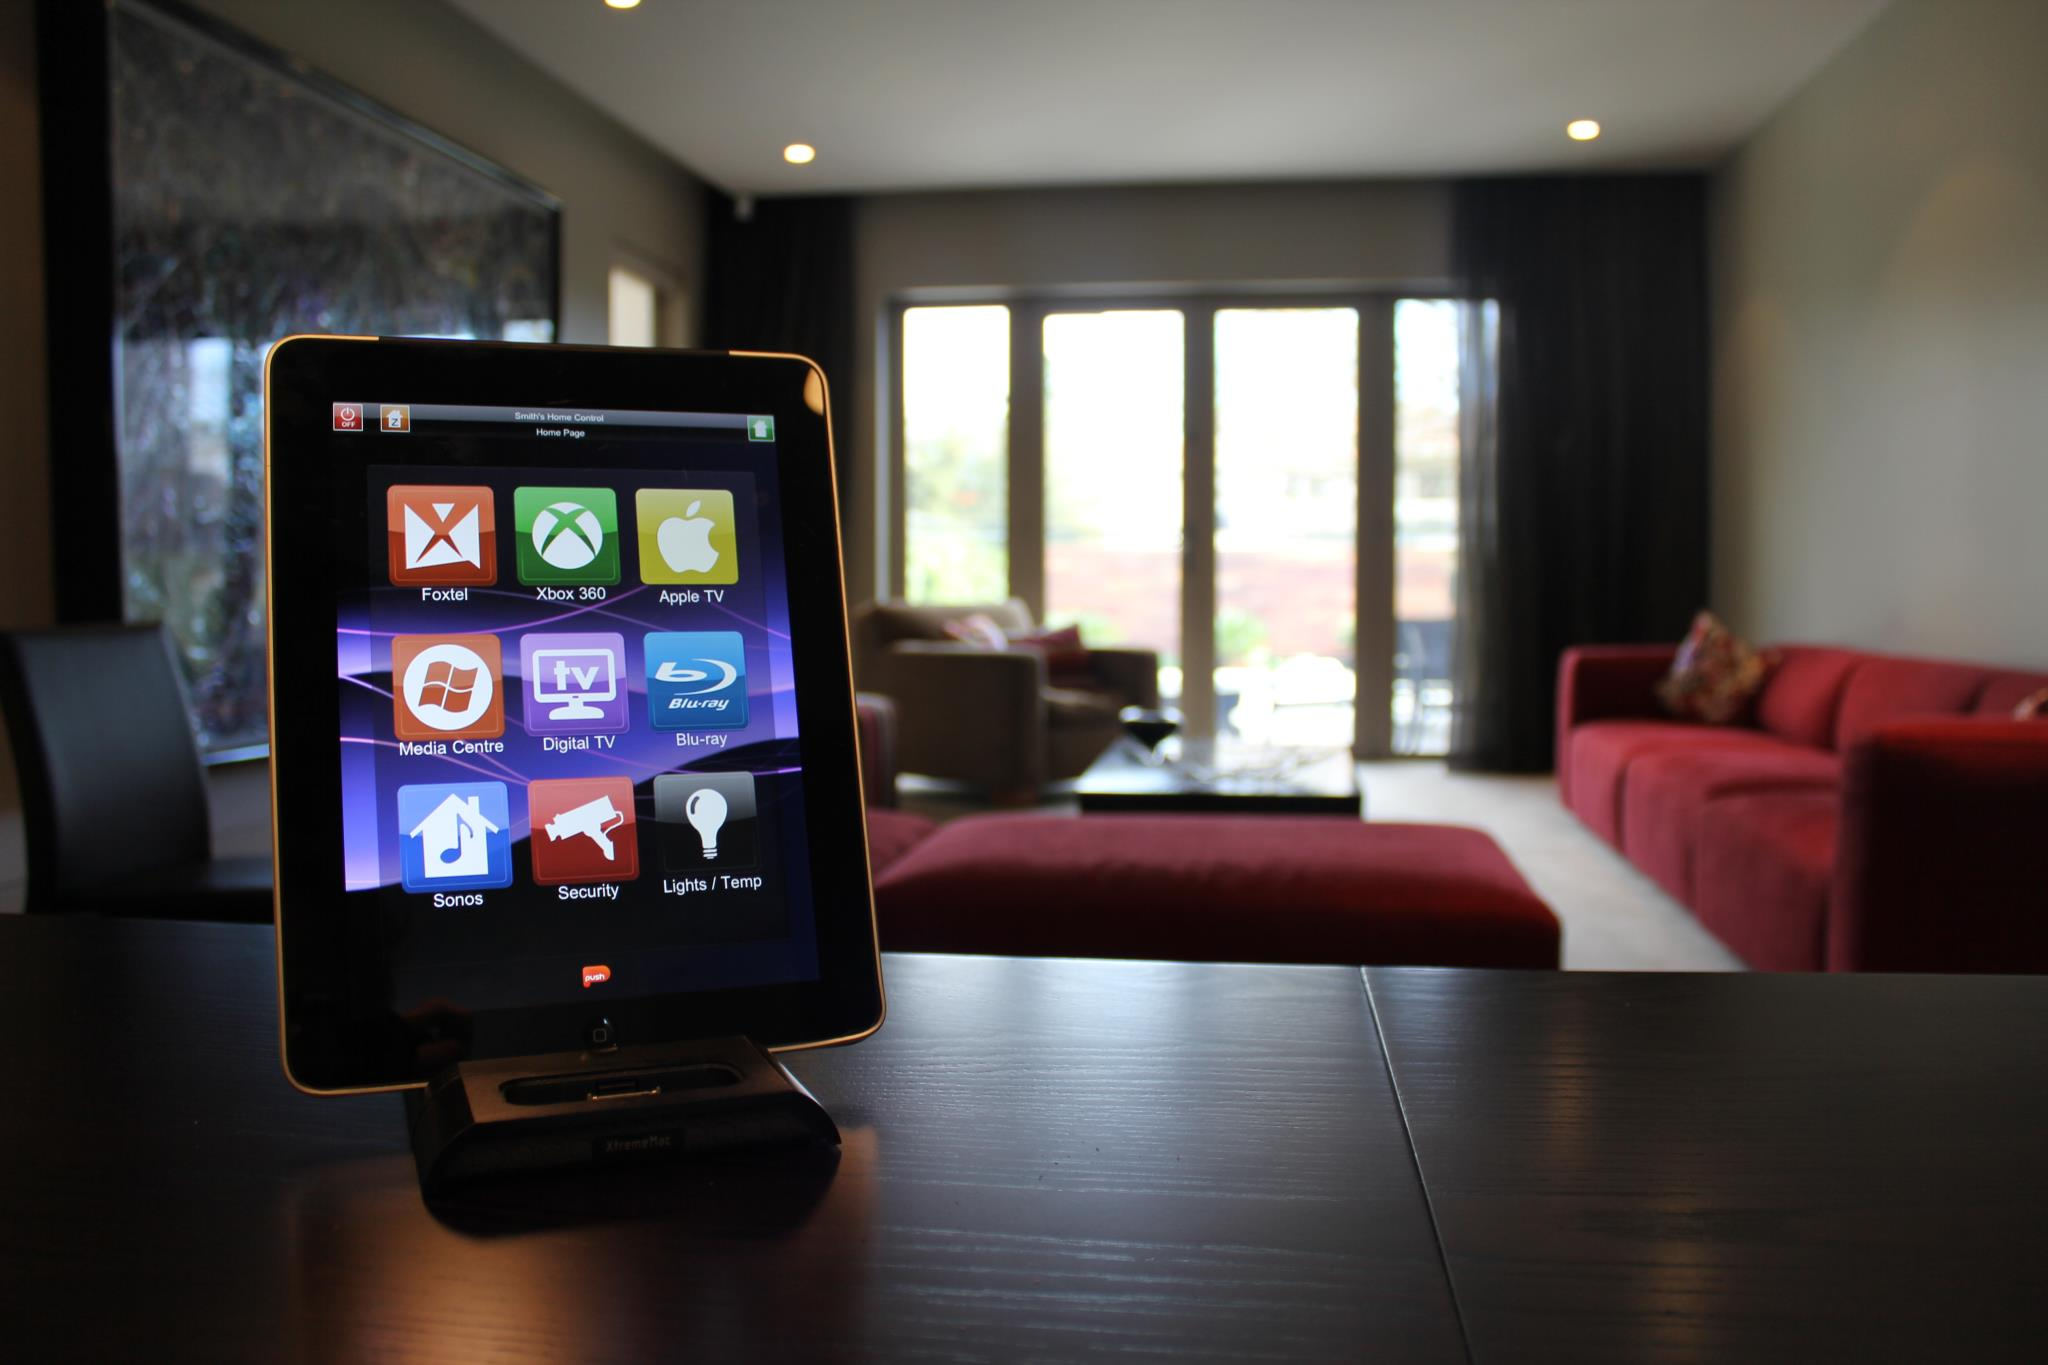 iPad Home Control and iPad Home Automation